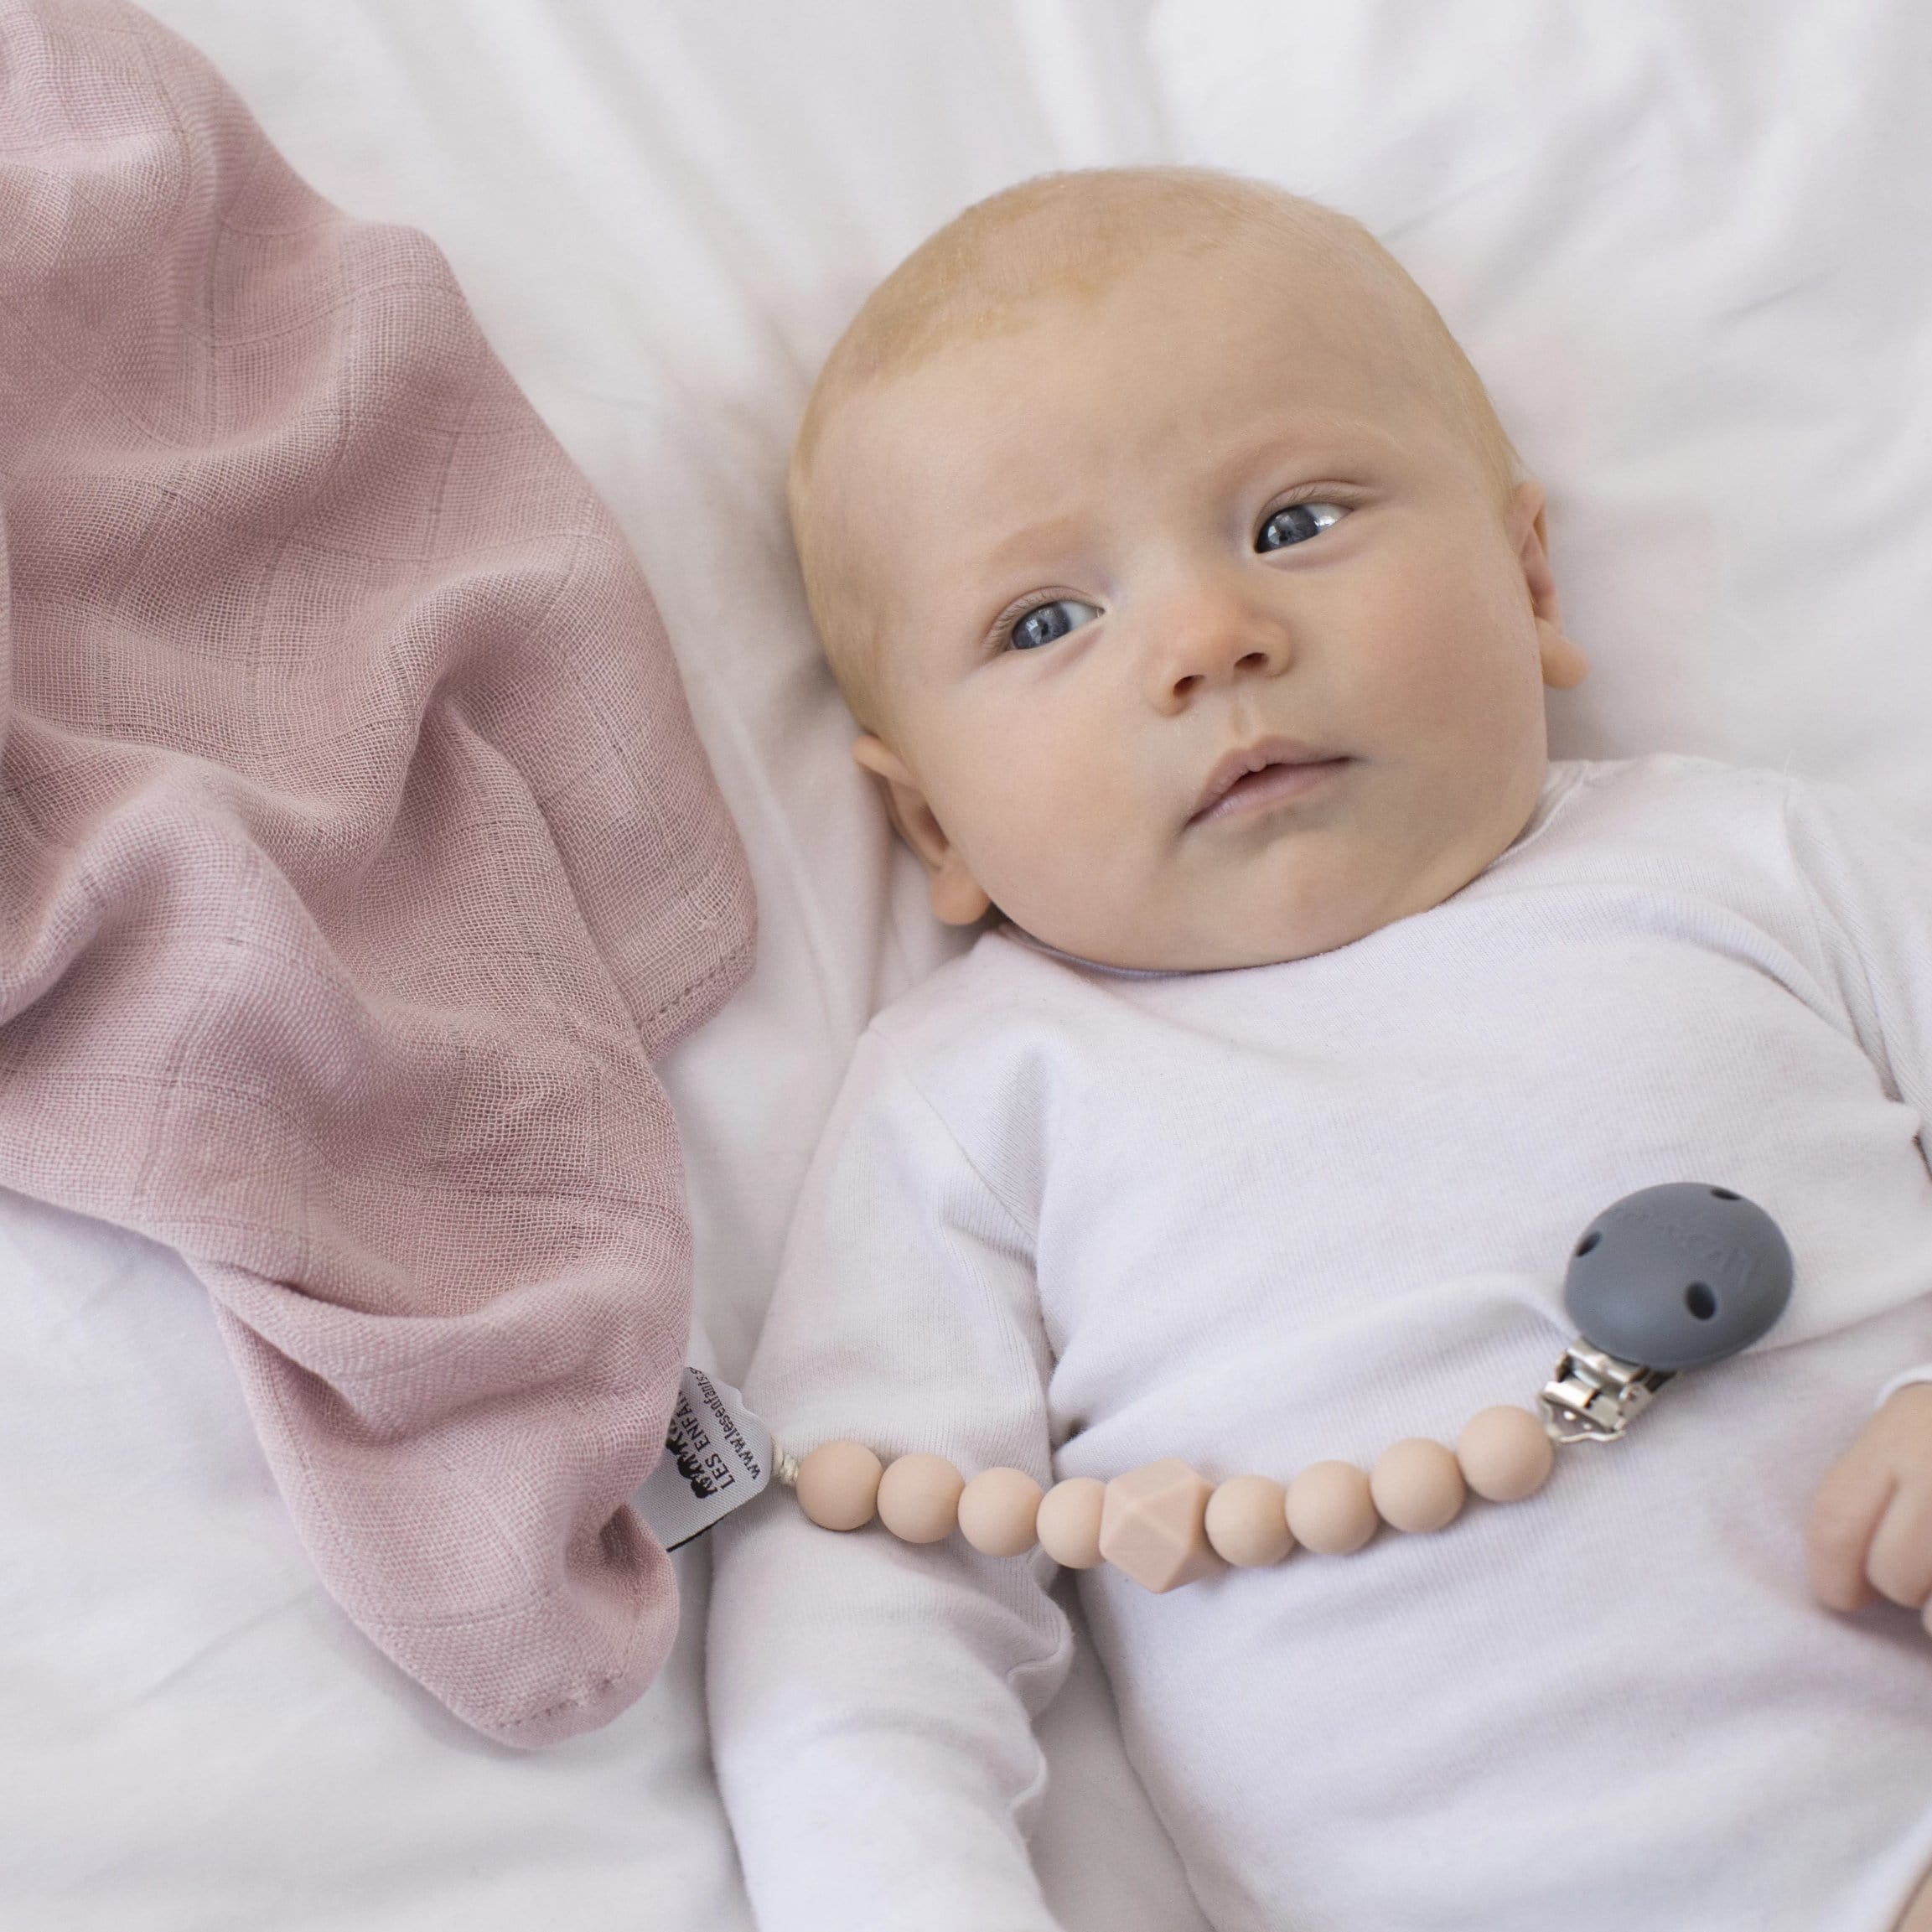 The Les Enfants Chewy Pacifier Clip pink with blond model and pink 100% bamboo muslin blanket